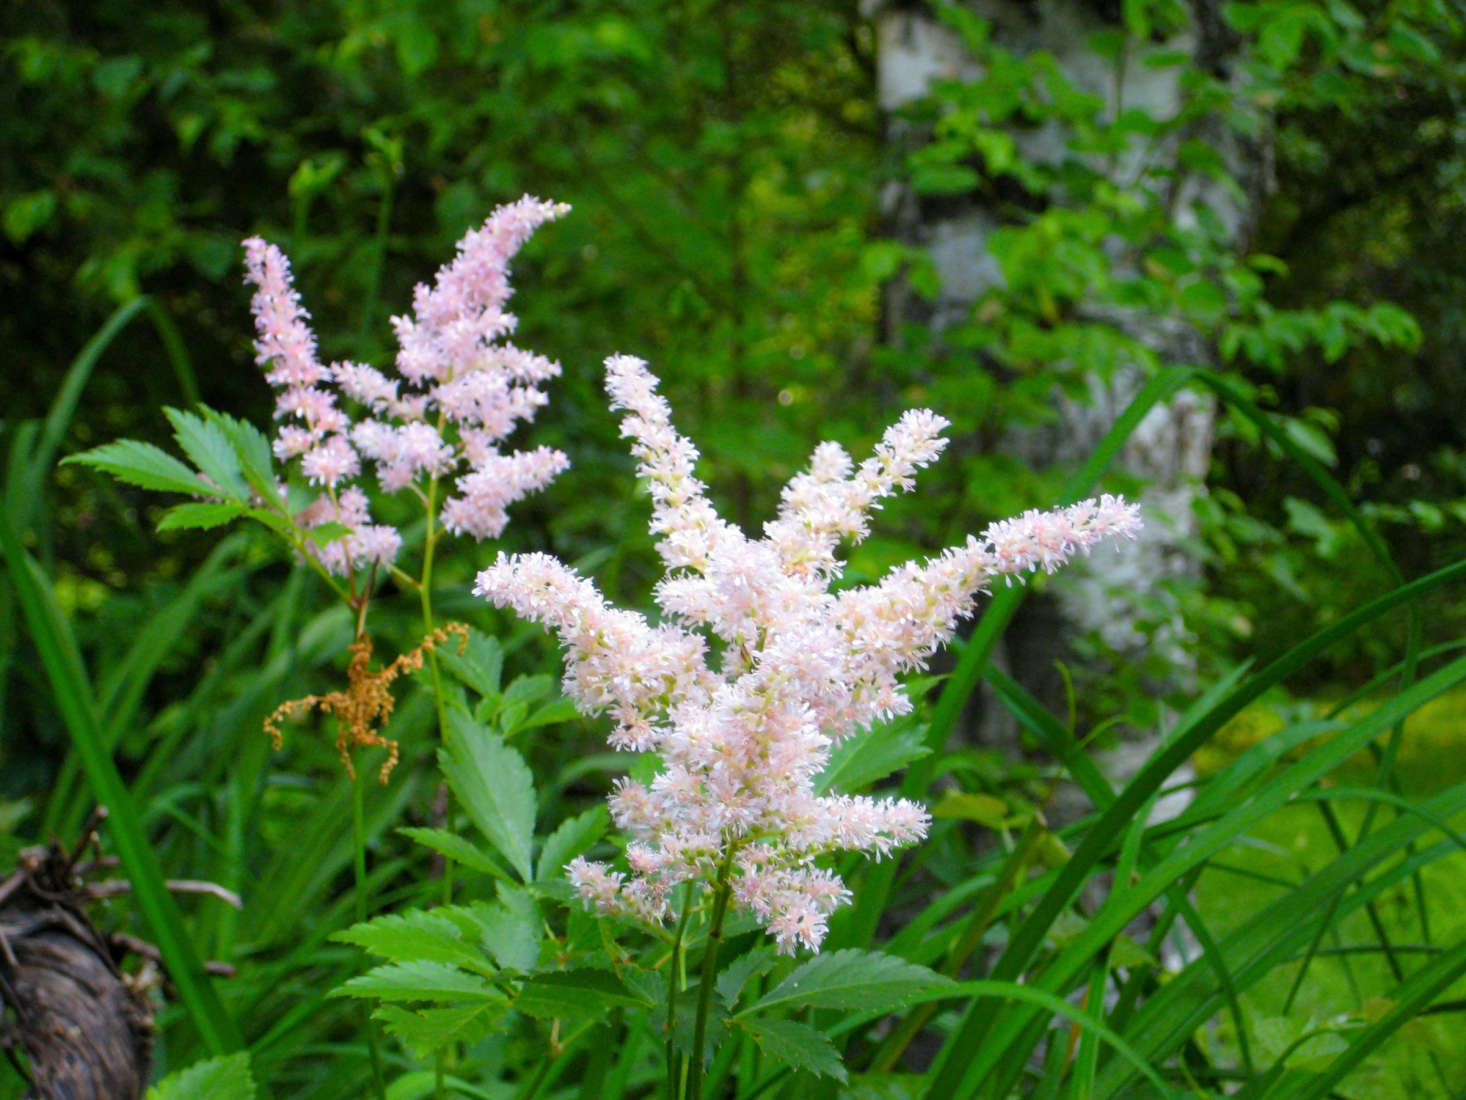 A pale pink variety of astilbe. Photograph by Bill Wren via Flickr.